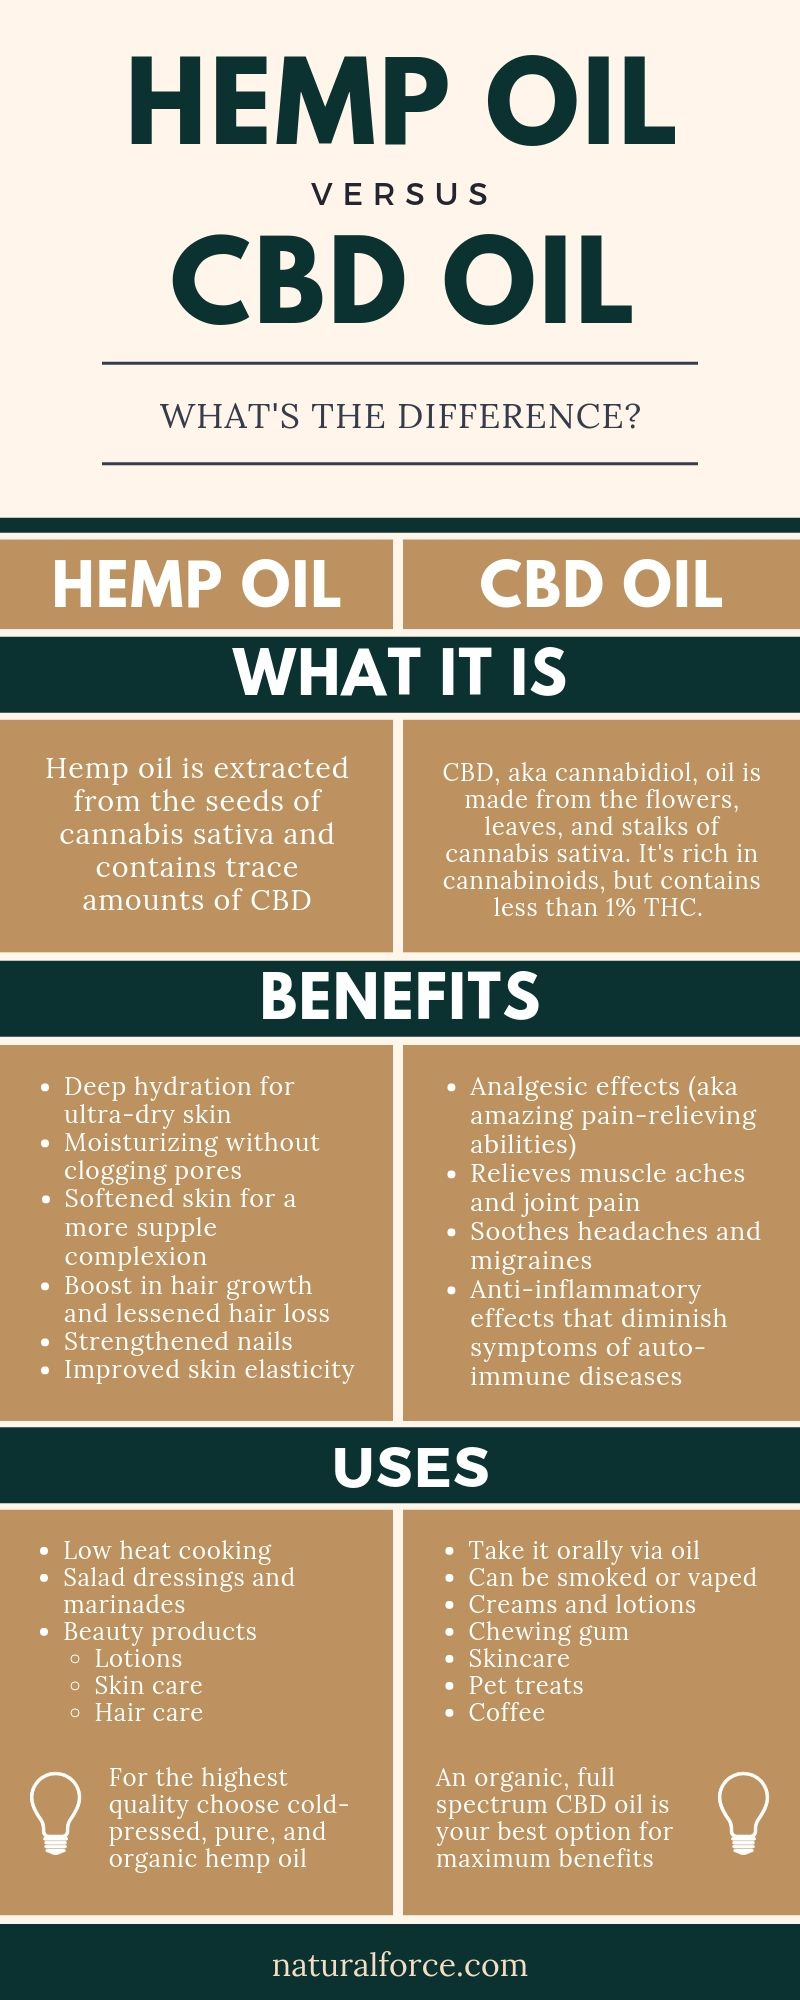 CBD Oil Benefits - The Complete Guide ...